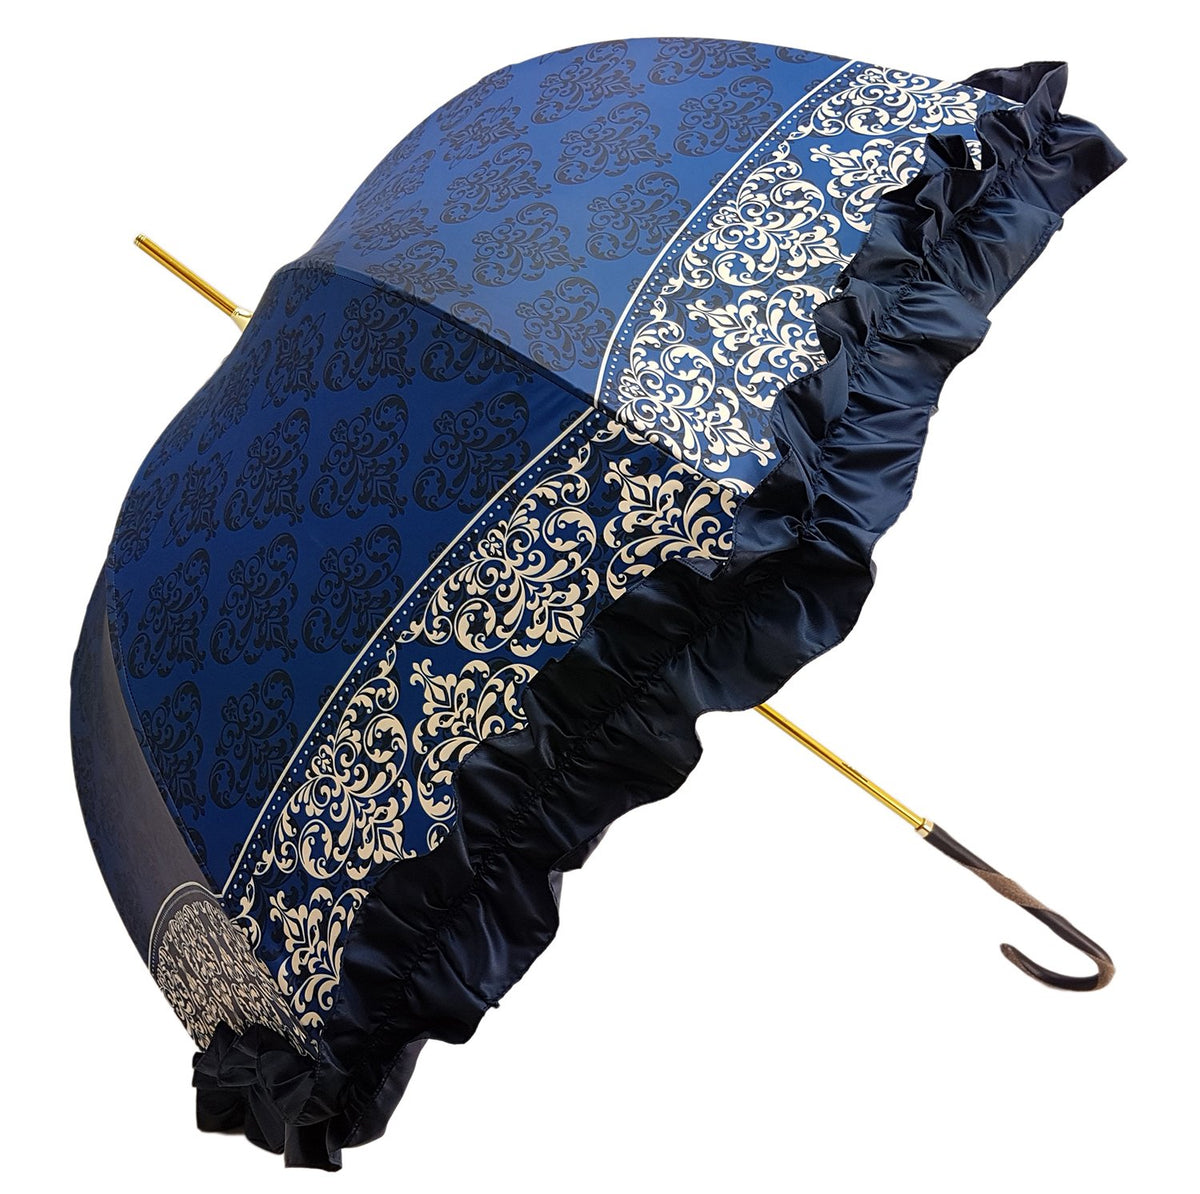 frilly umbrella made in italy